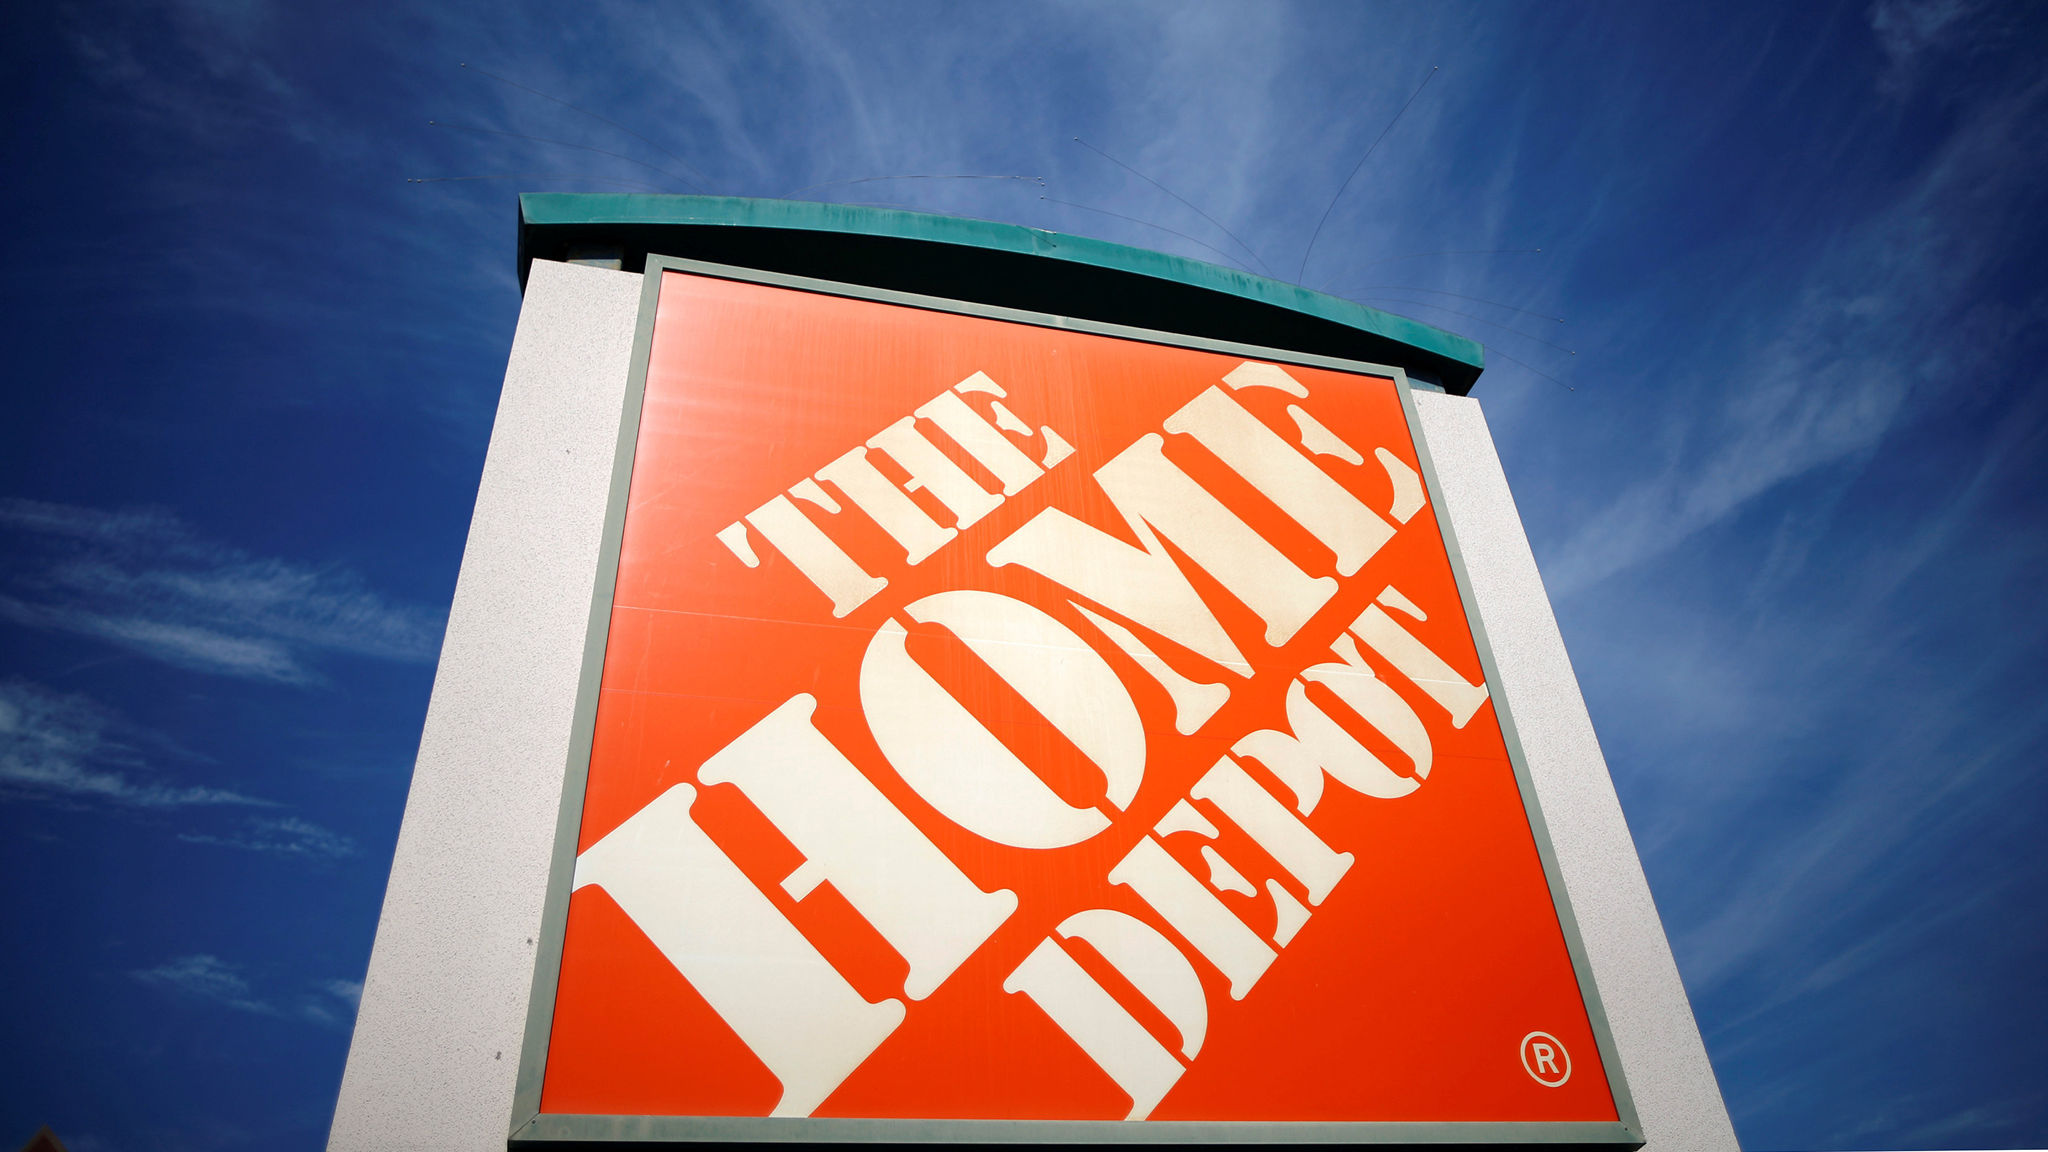 Earnings rise at Home Depot but sales miss estimates